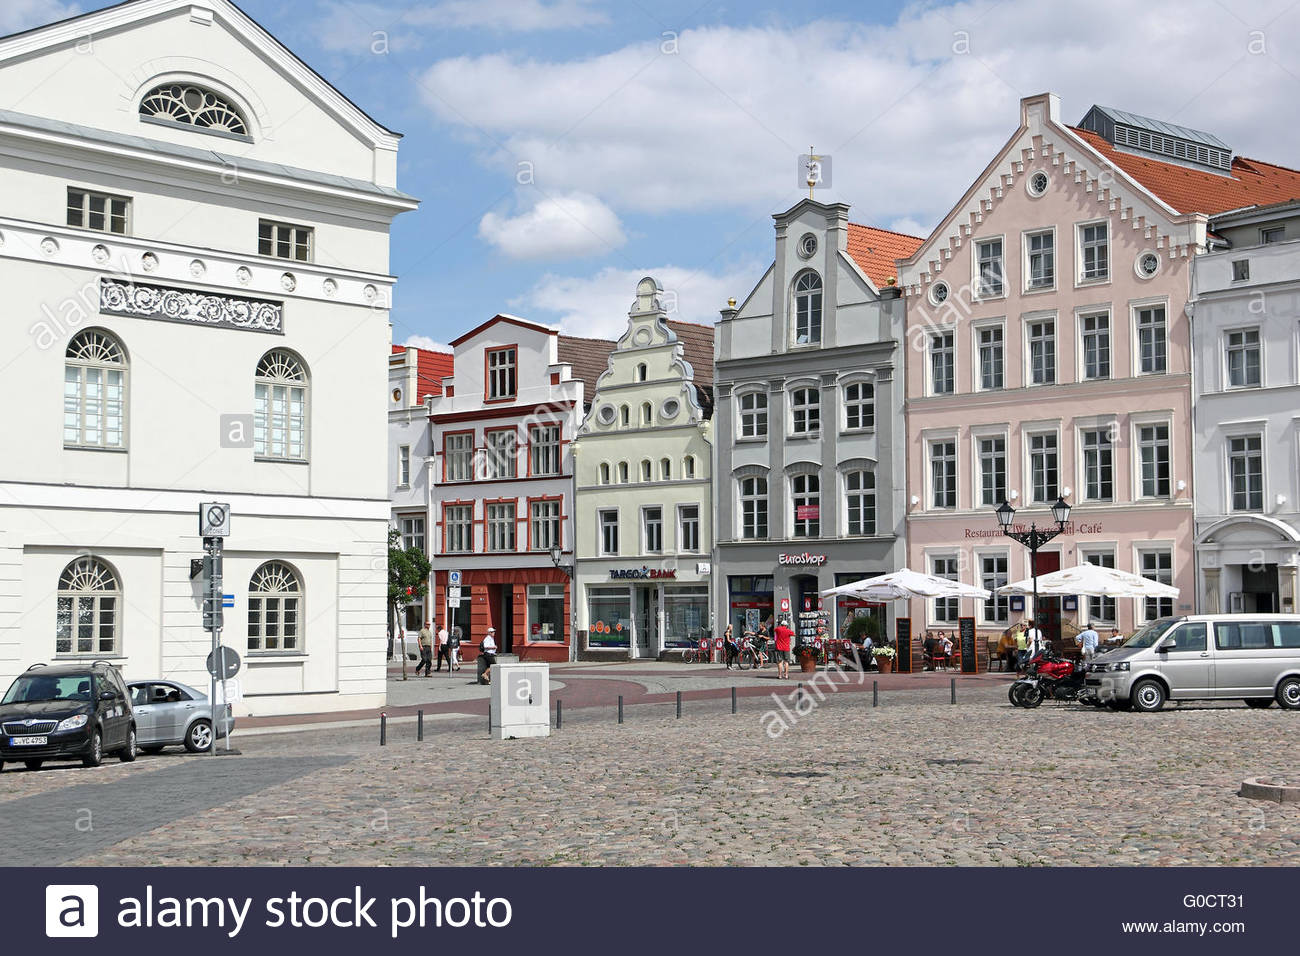 Town hall and patrician houses at market place of - Stock Image